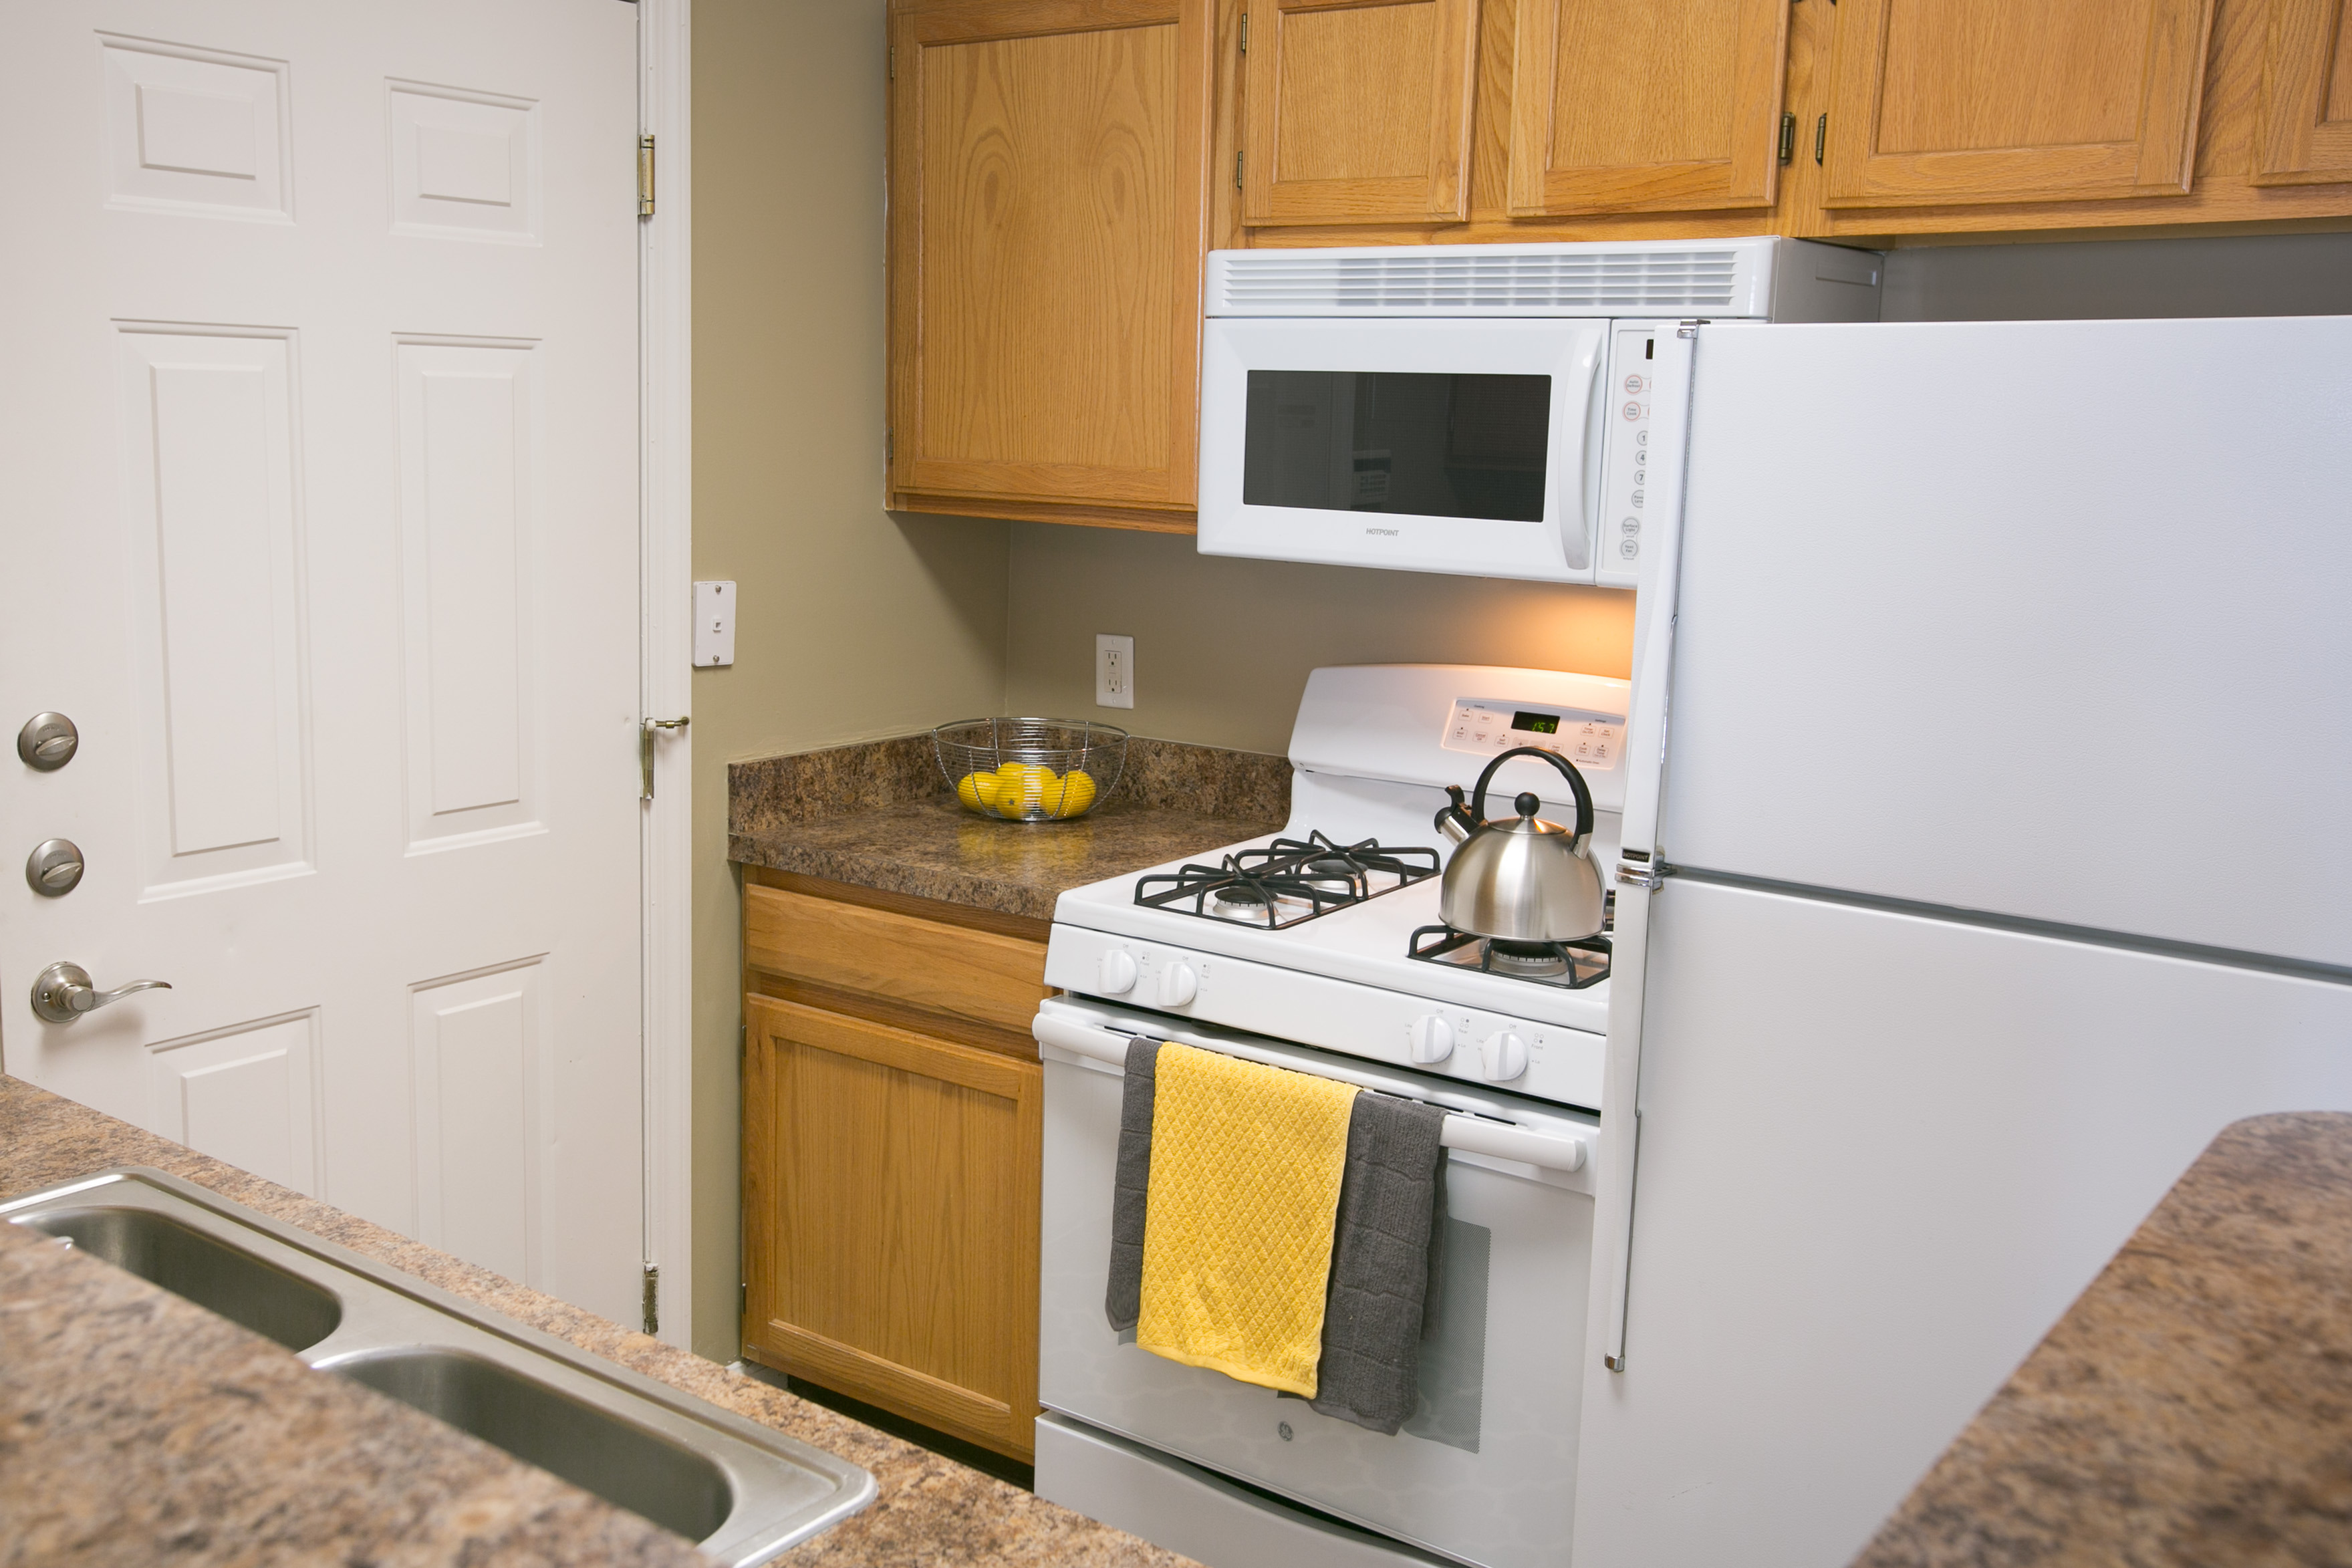 Updated counters and built in appliances at The Village of Western Reserve Apartments in Streetsboro, OH